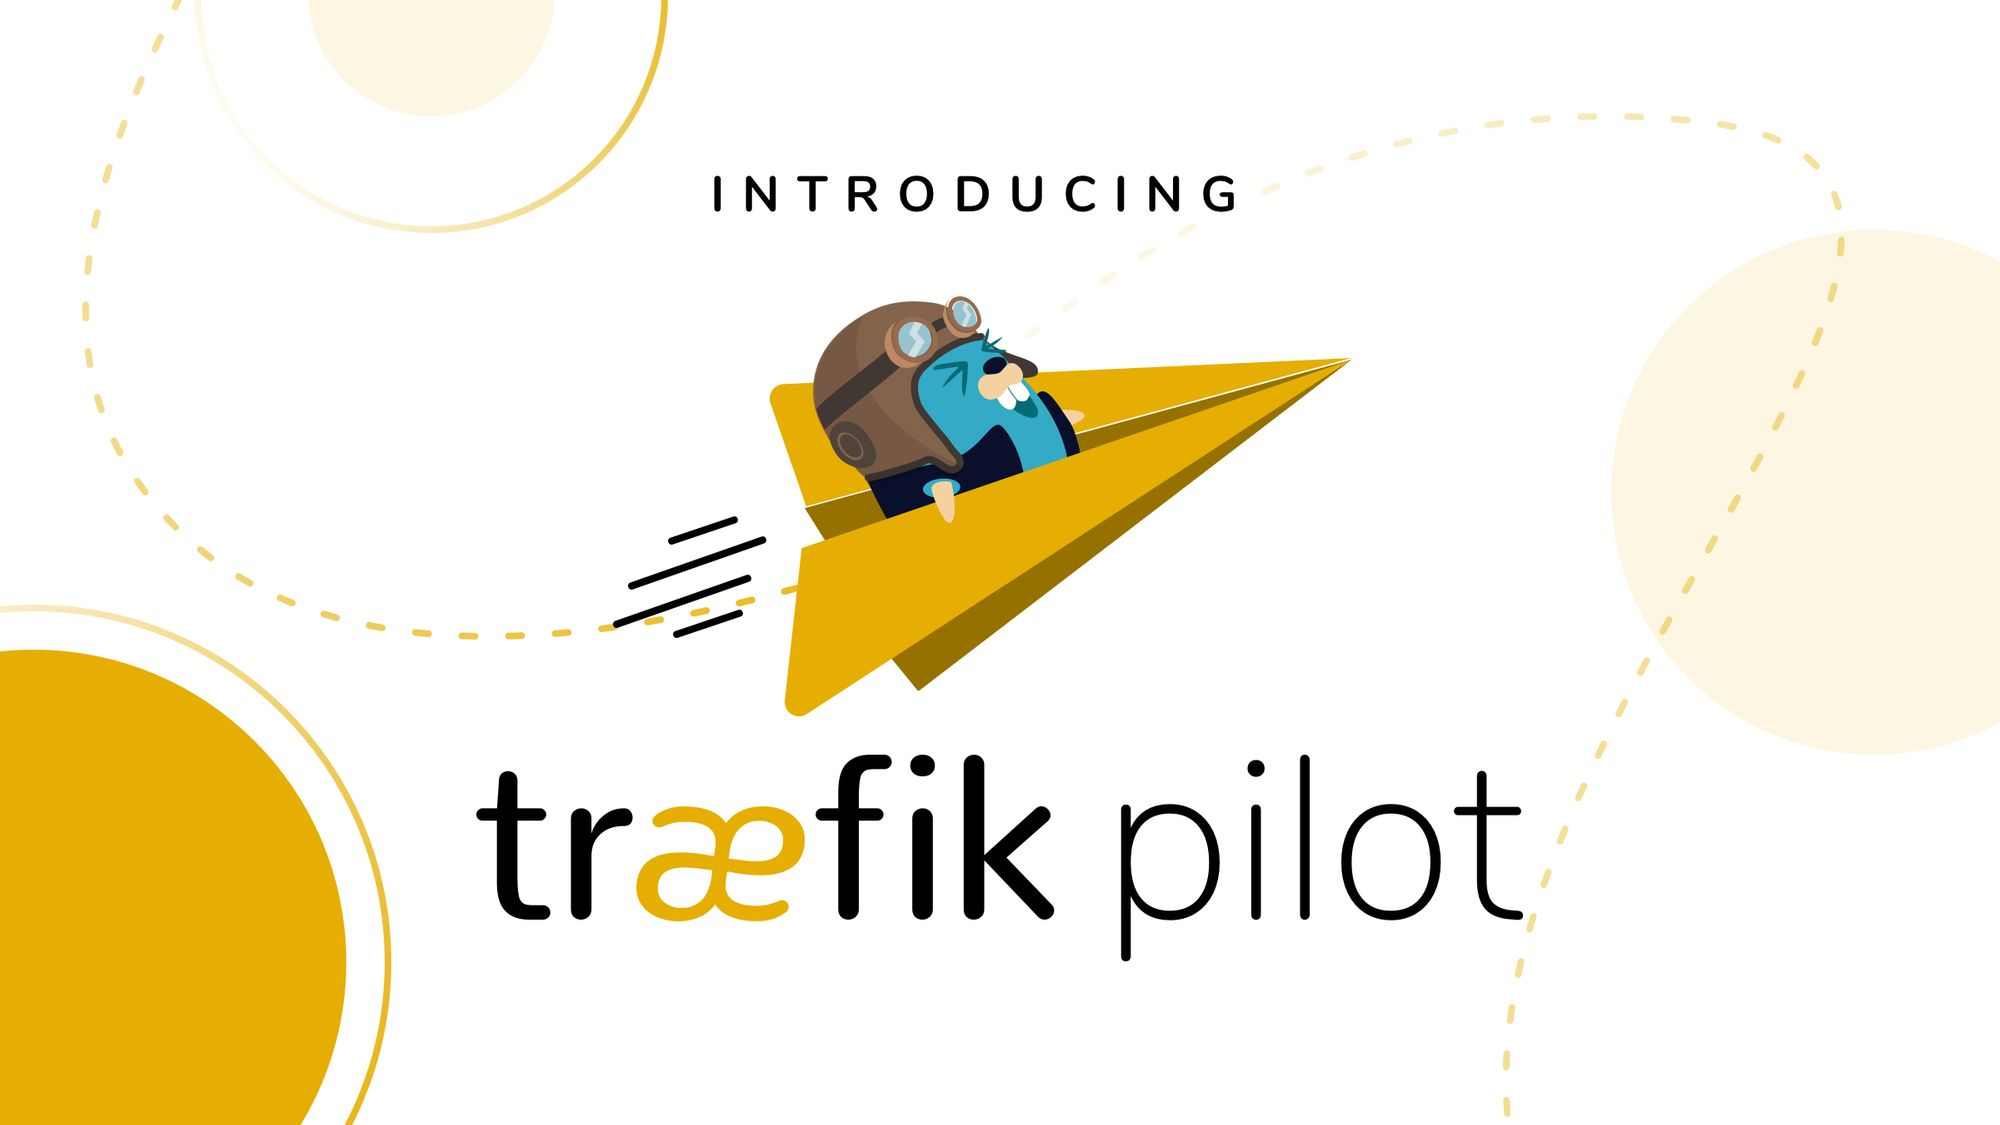 Introducing Traefik Pilot